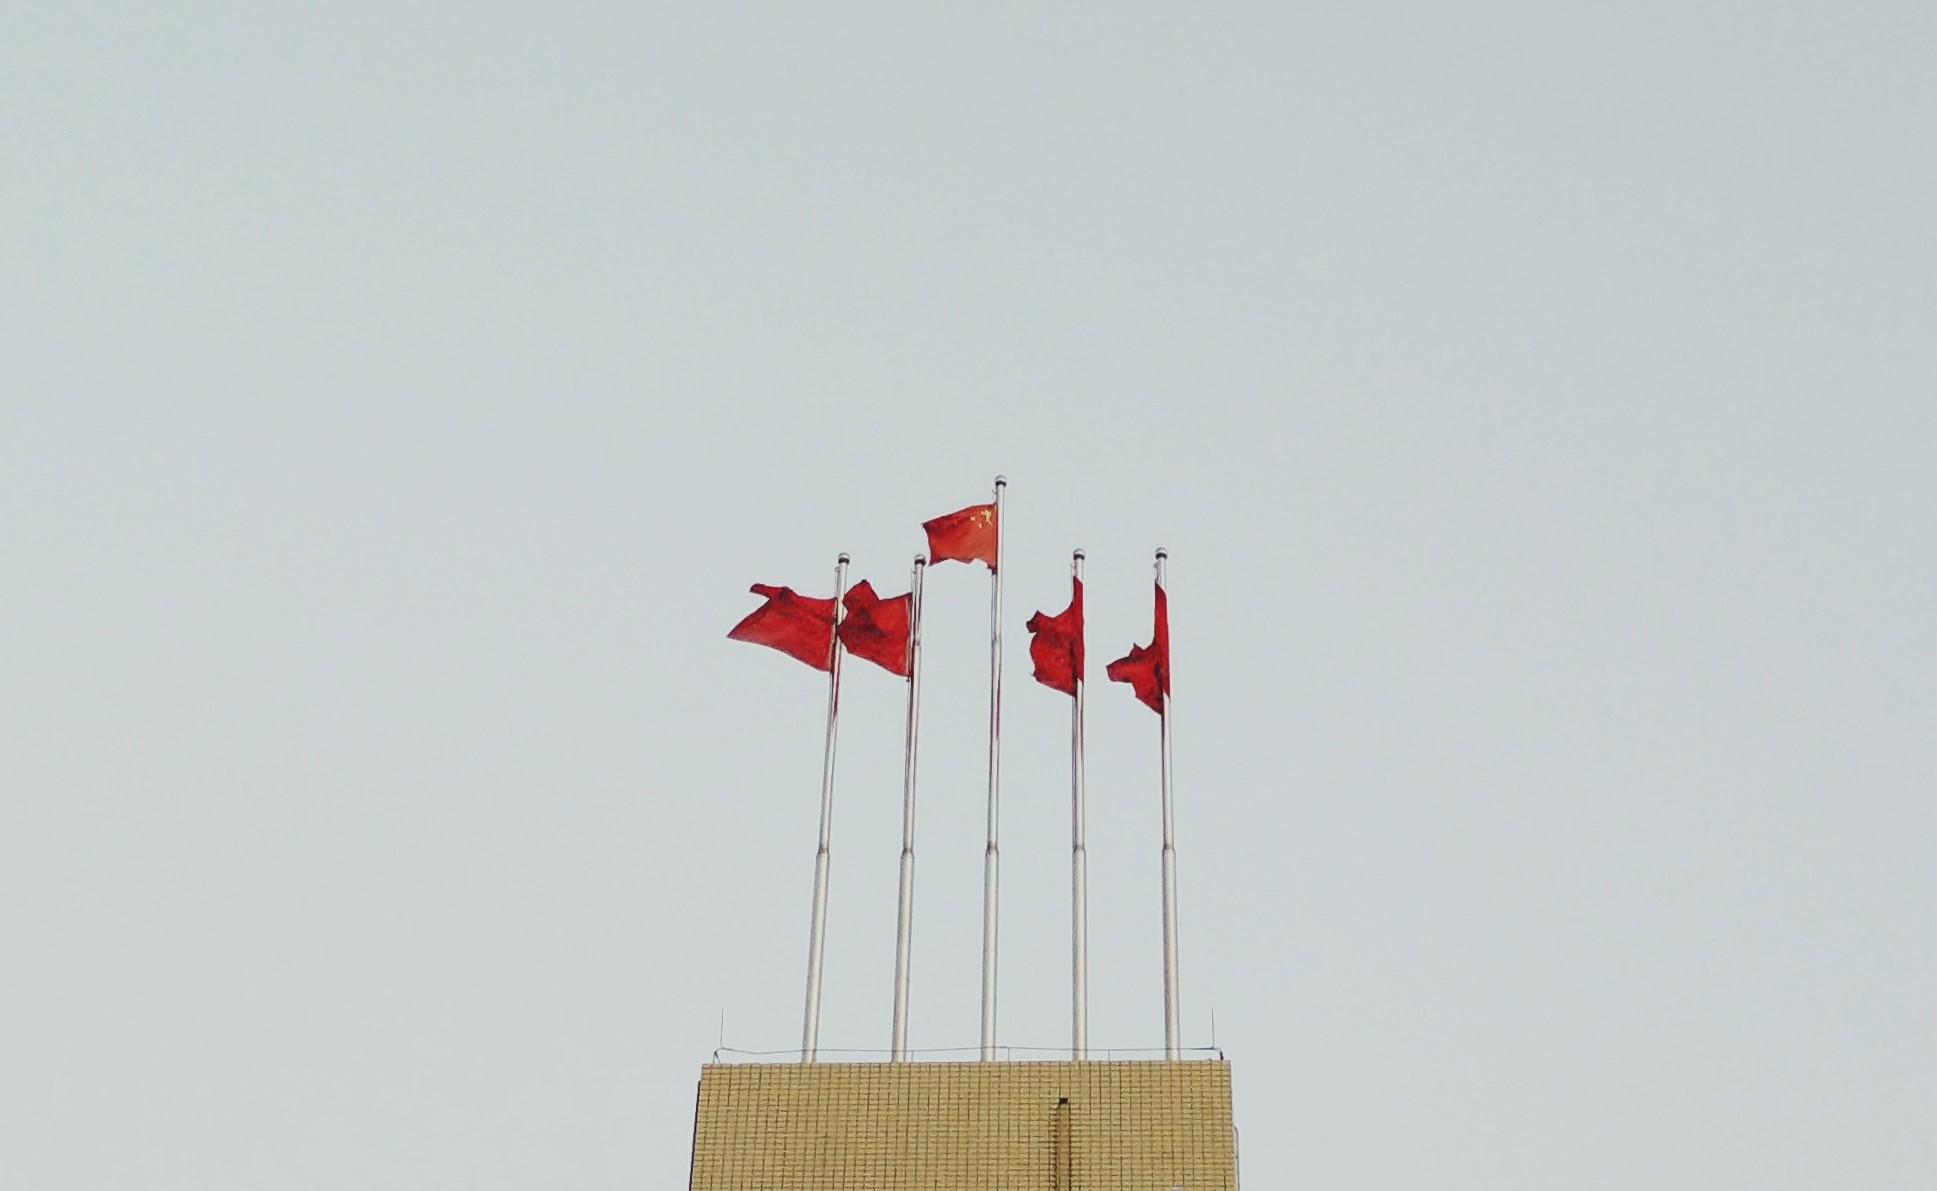 Chinese Churches threatened with surging nationalism